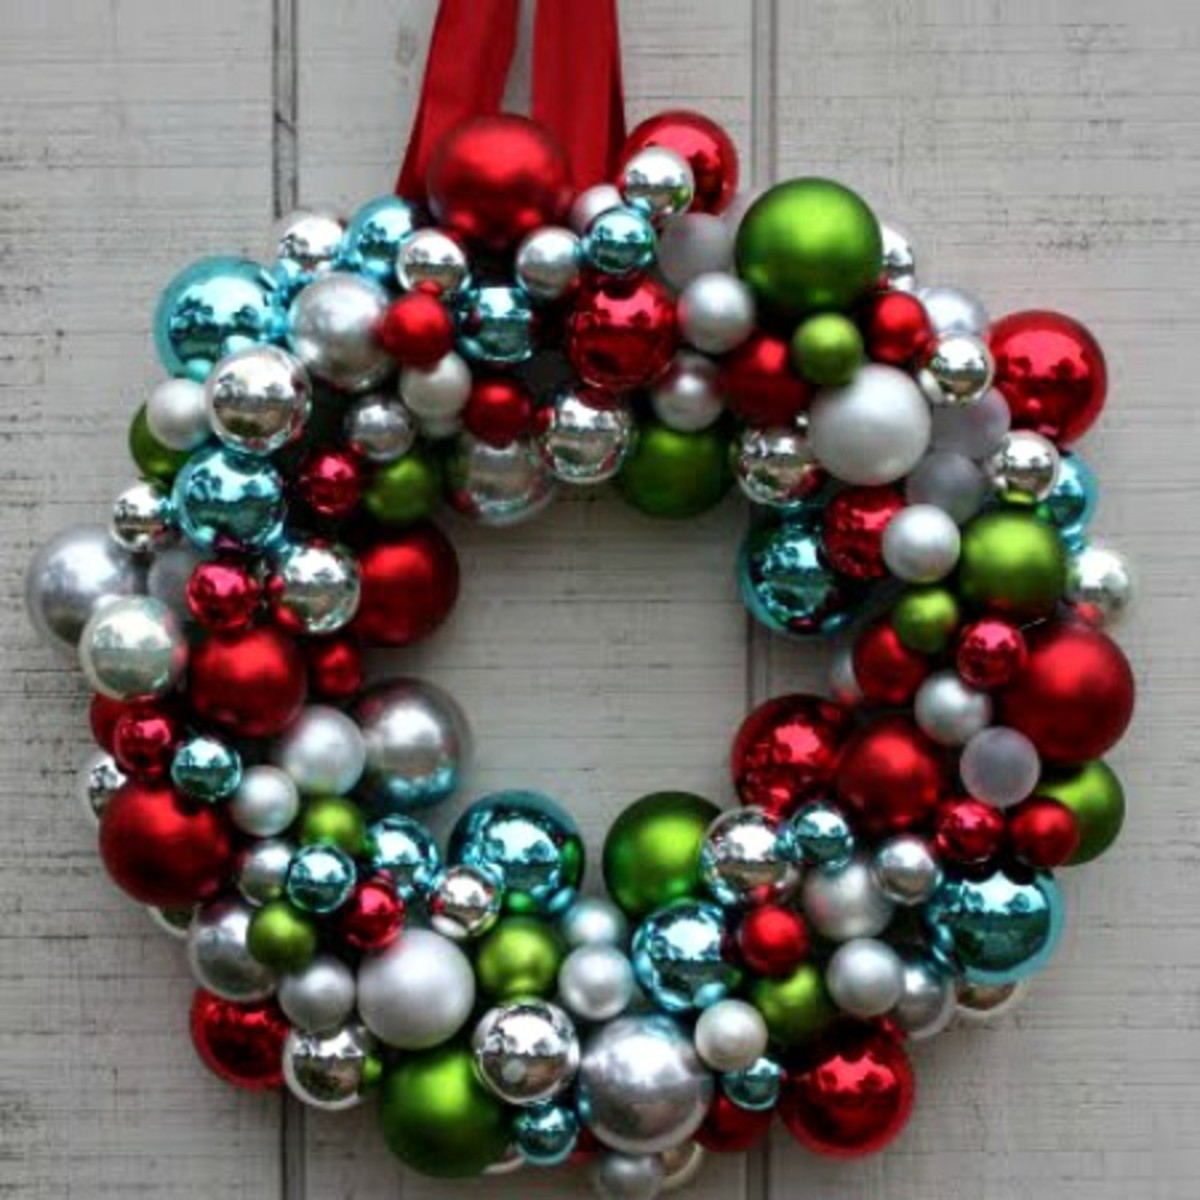 image 5 old glass ball christmas ornament wreath - Christmas Ball Wreath